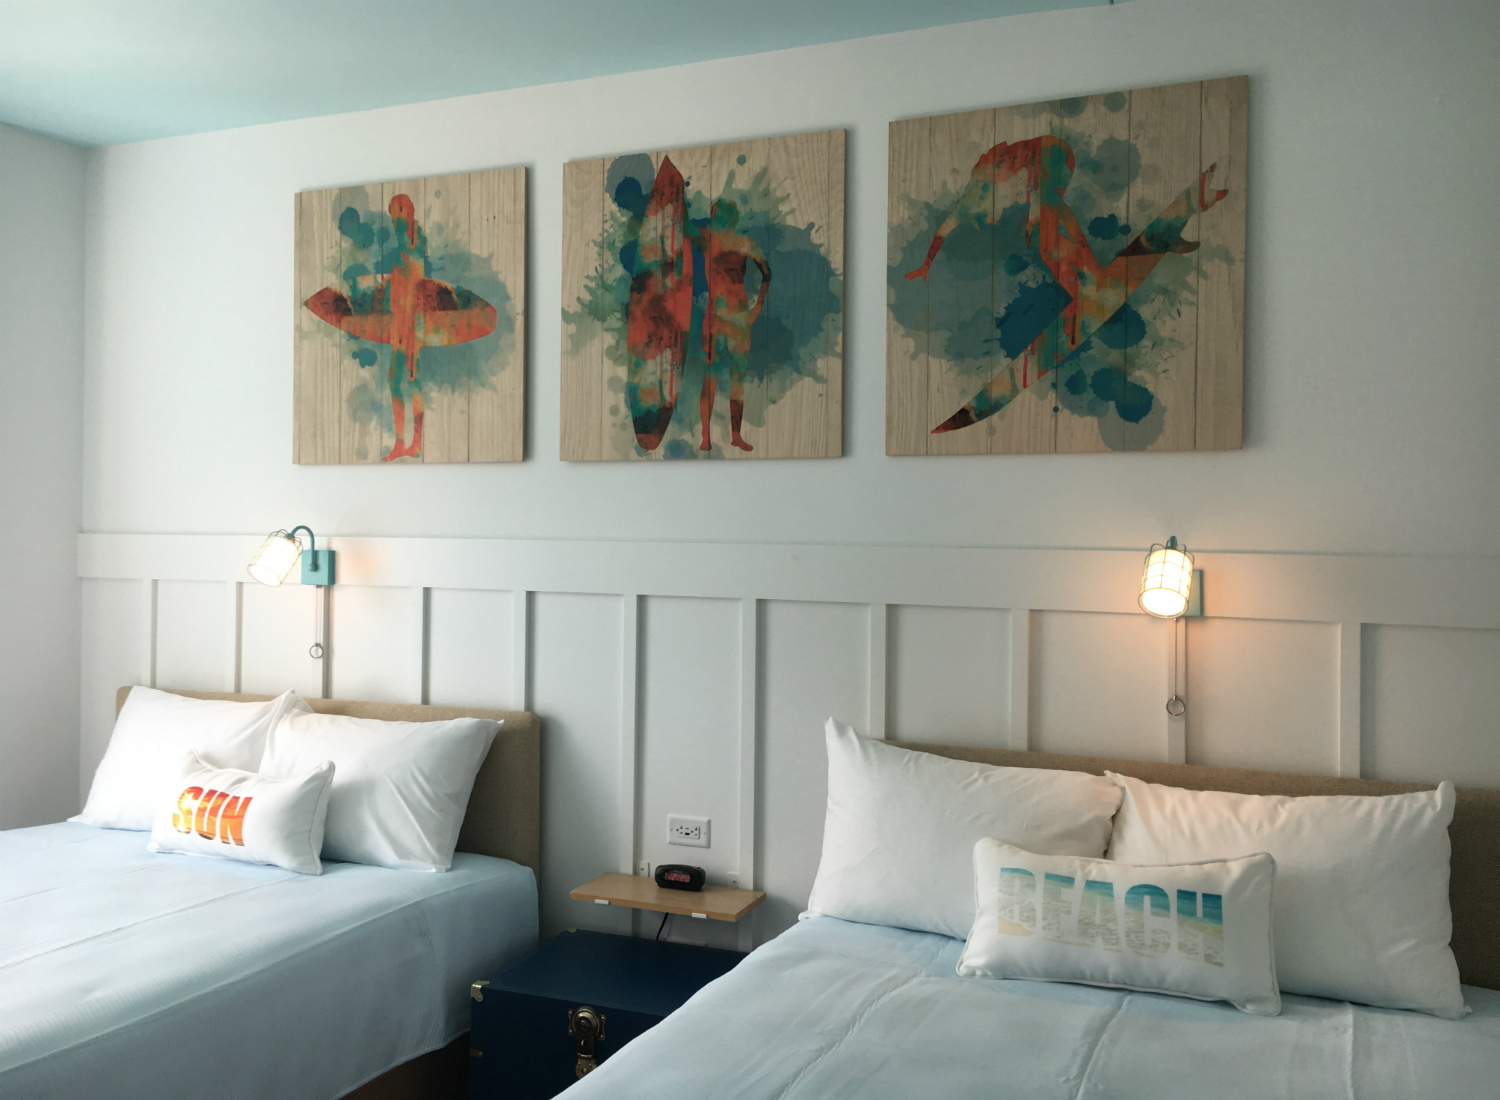 A standard room at Surfside Inn & Suites contains two queen beds and starts at just $73/night.